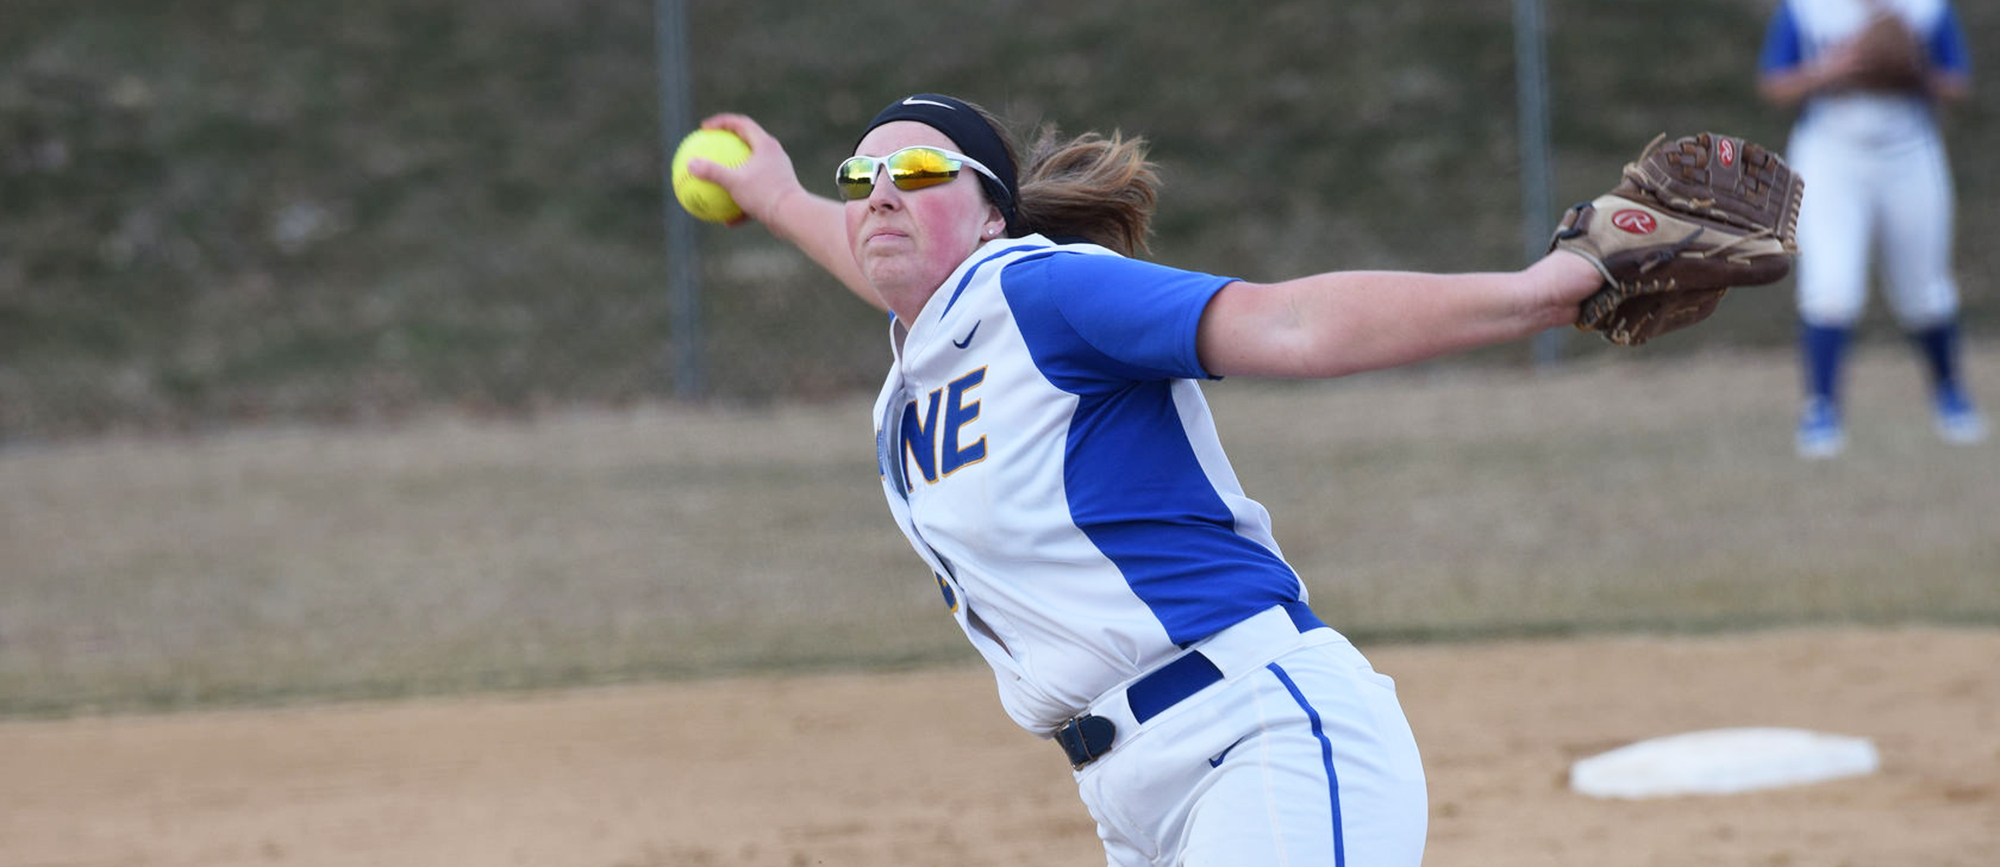 Junior Aimee Kistner pitched six shutout innings in Western New England's 6-2 win over Albright on Sunday. (Photo by Rachael Margossian)